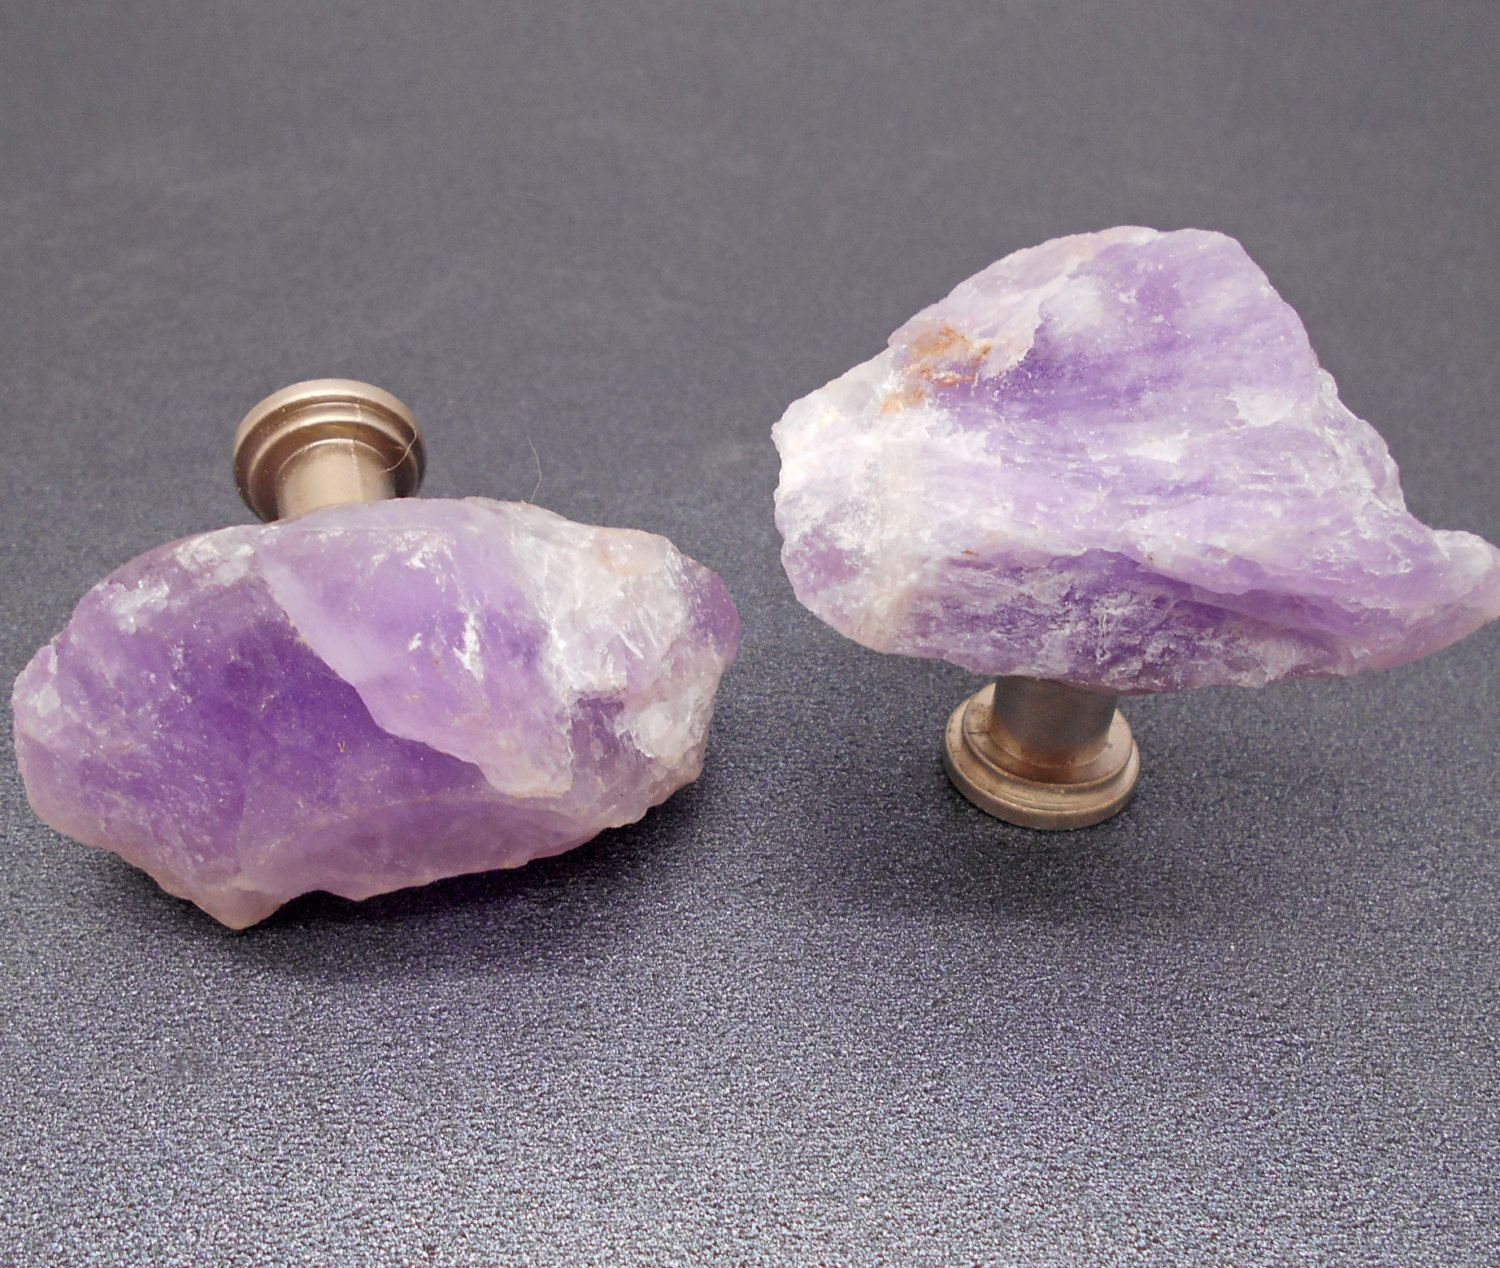 Raw Amethyst Cabinet Knobs   Set Of 2, Stone Cabinet Knobs Or Pulls, Kitchen